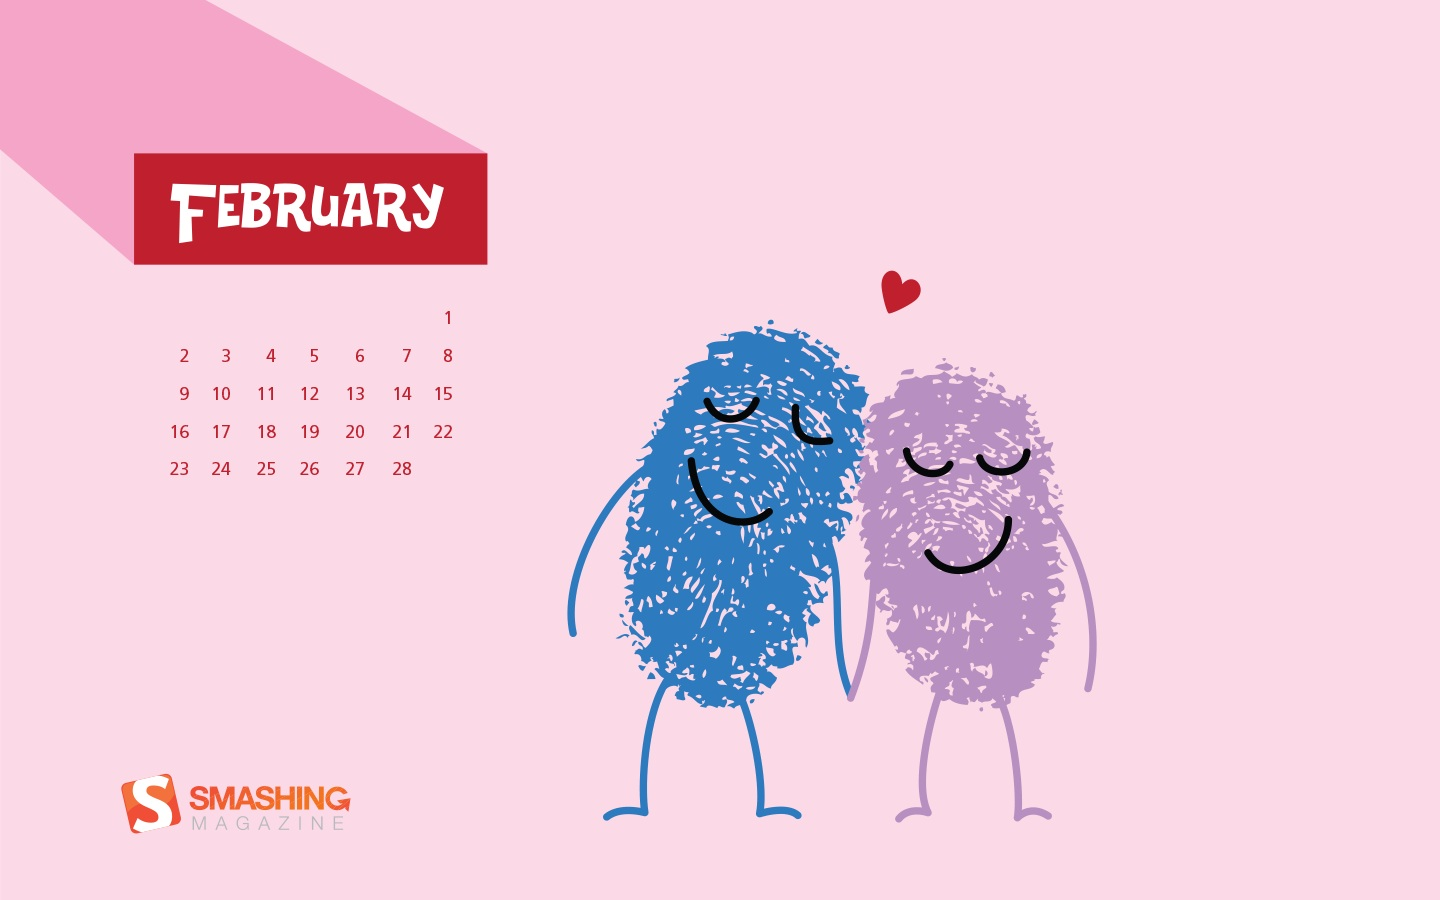 In January Calendar Wallpaper 49891